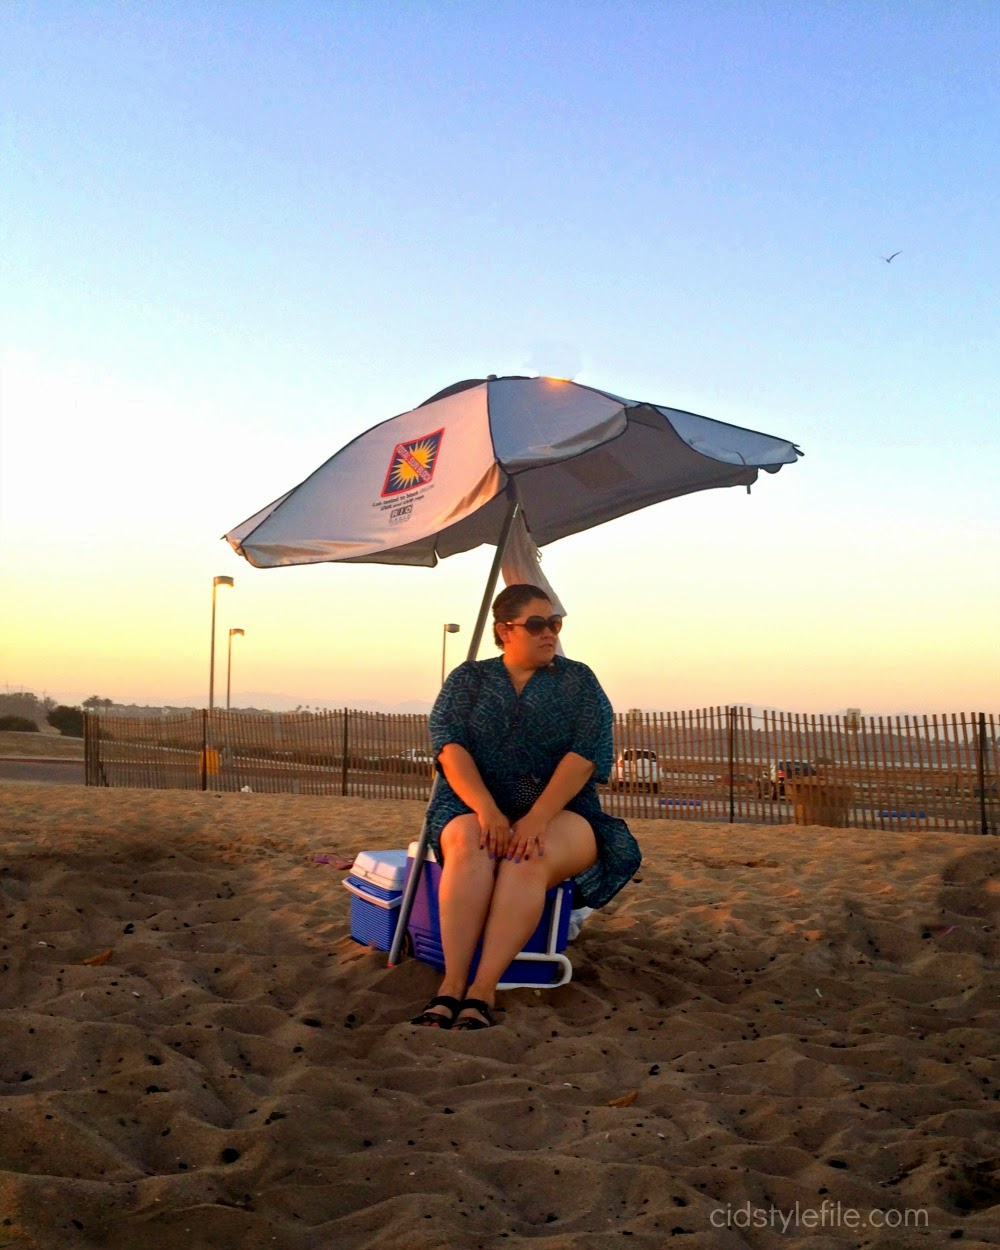 rio beach, total sun block, umbrella, review, sponsored, beach day, cid girls, cid style file, bolsa chica, orange county